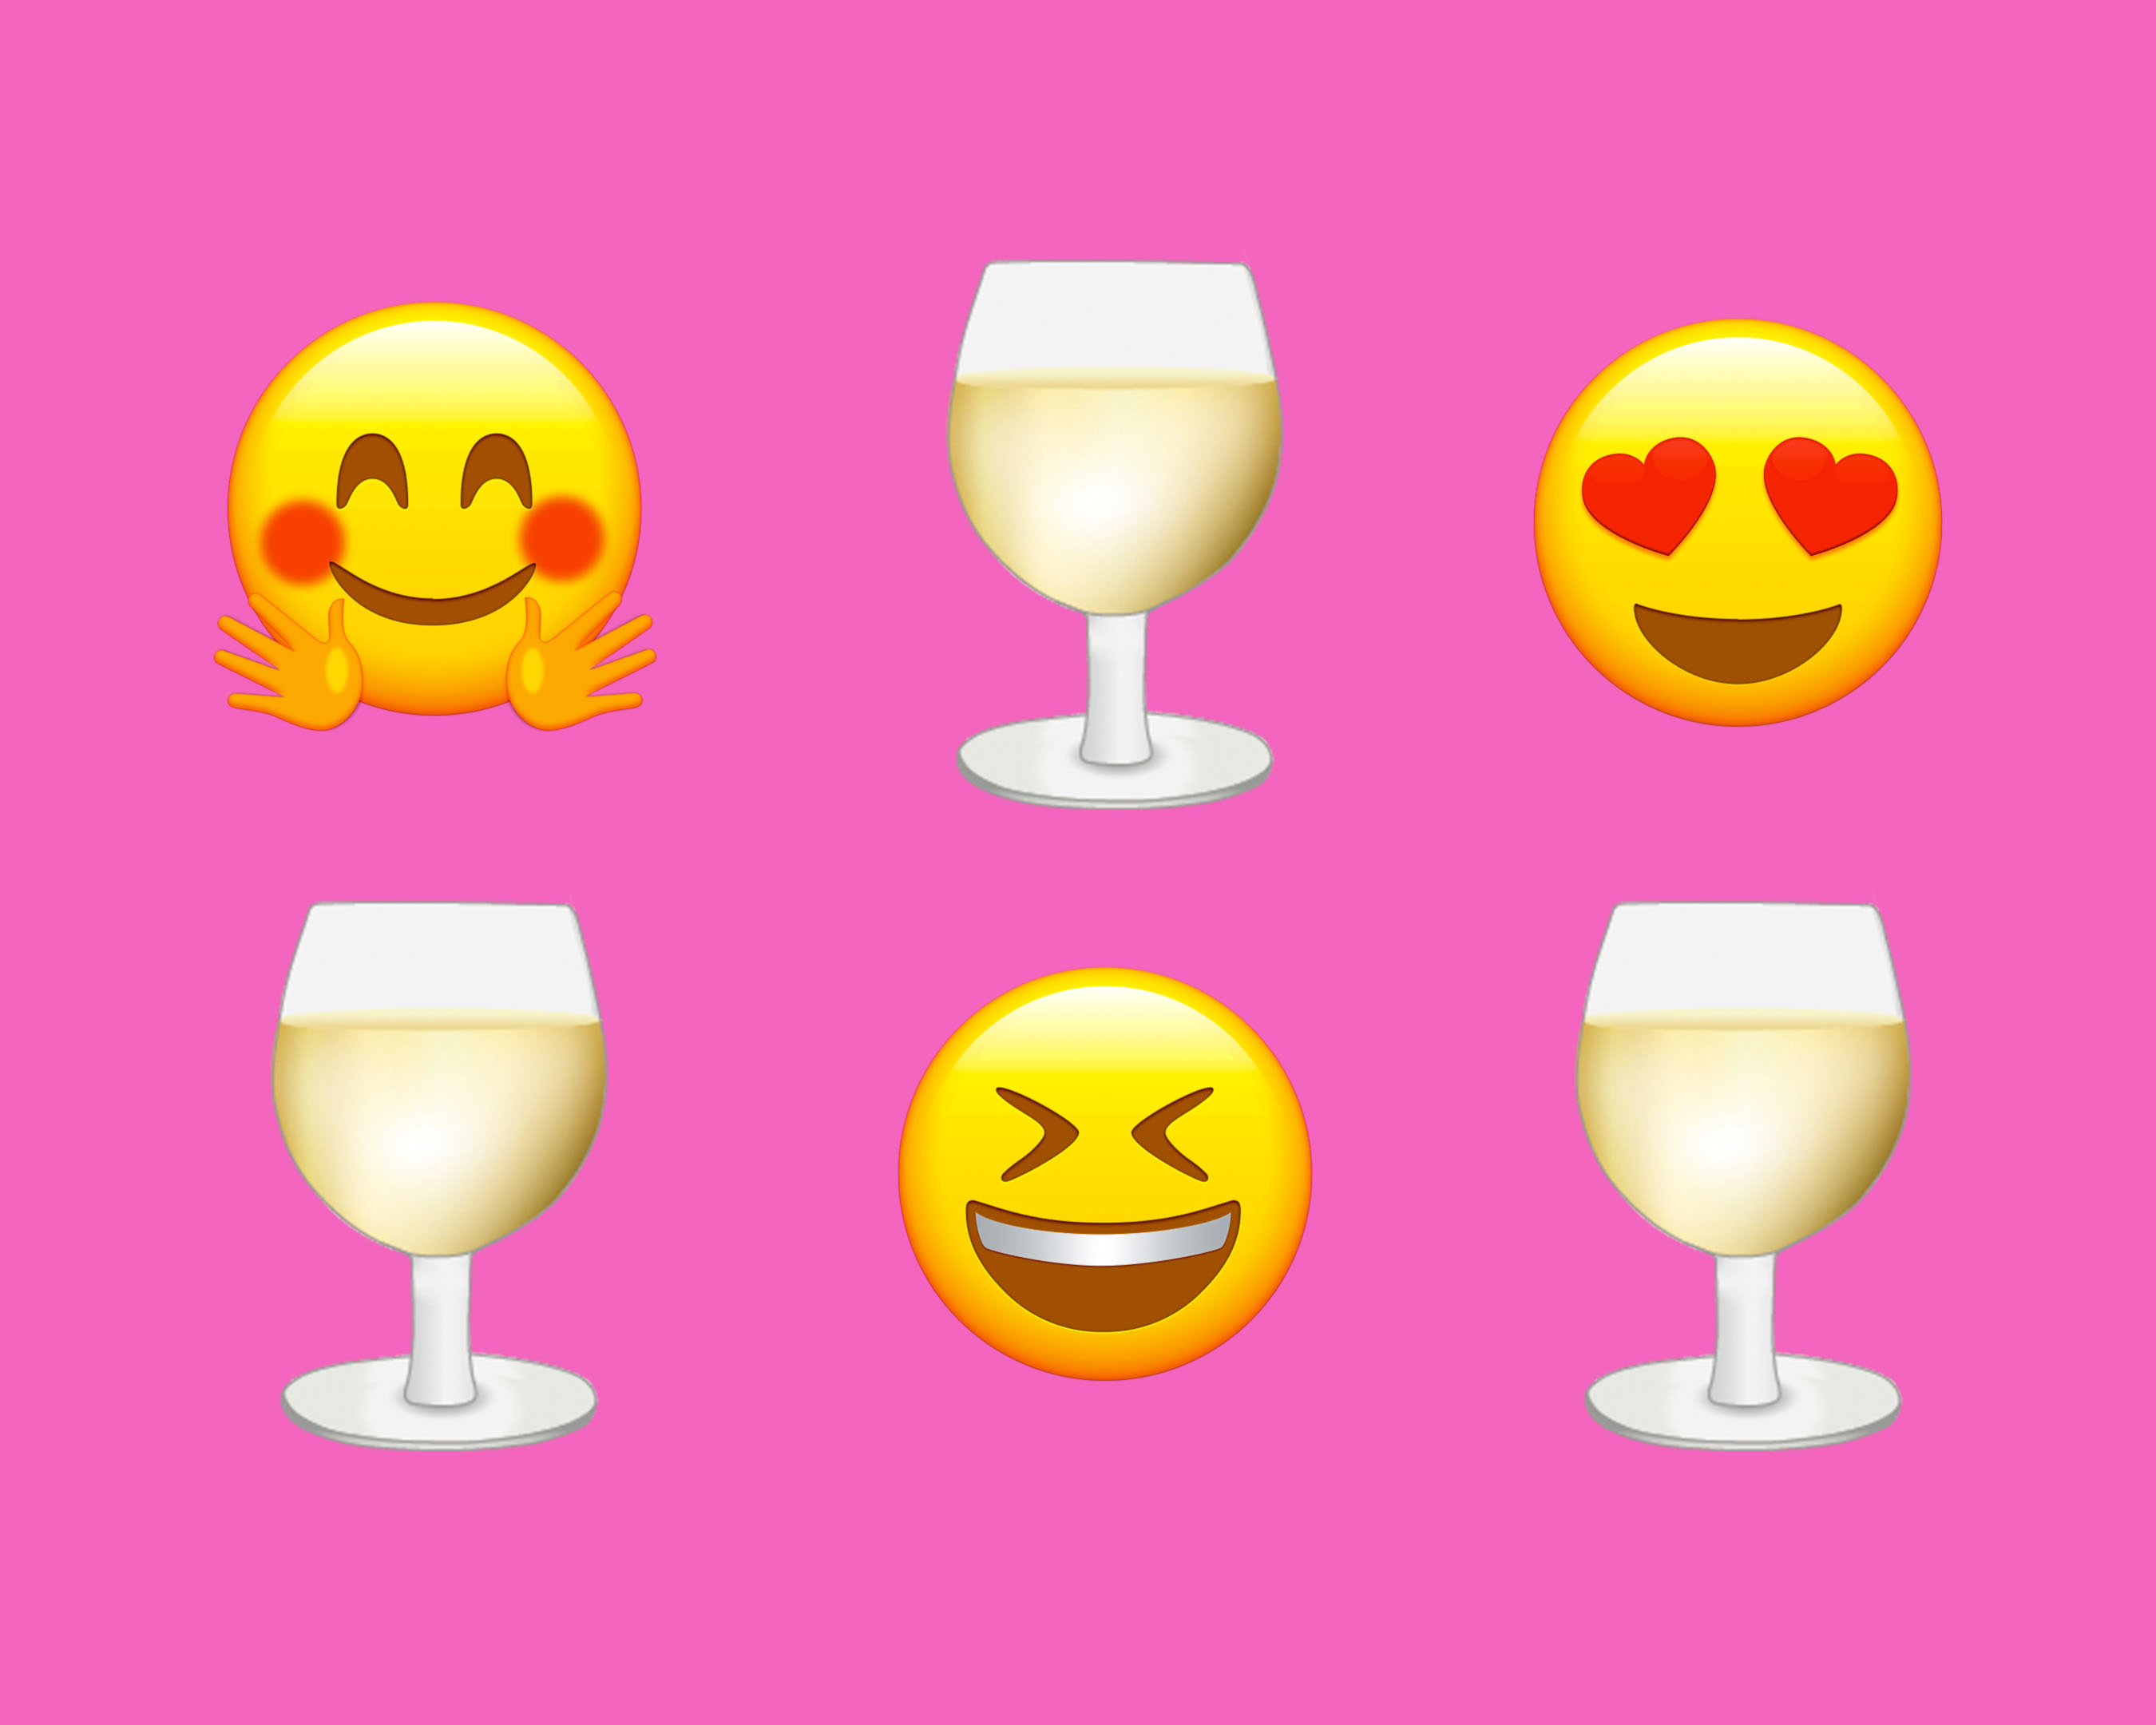 Since its debut on National White Wine Day August 4th, the global campaign for a #WhiteWineEmoji has generated significant attention, with white wine purveyors and fans alike coming together to celebrate the possibility of a white wine glass joining the emoji roster at last.